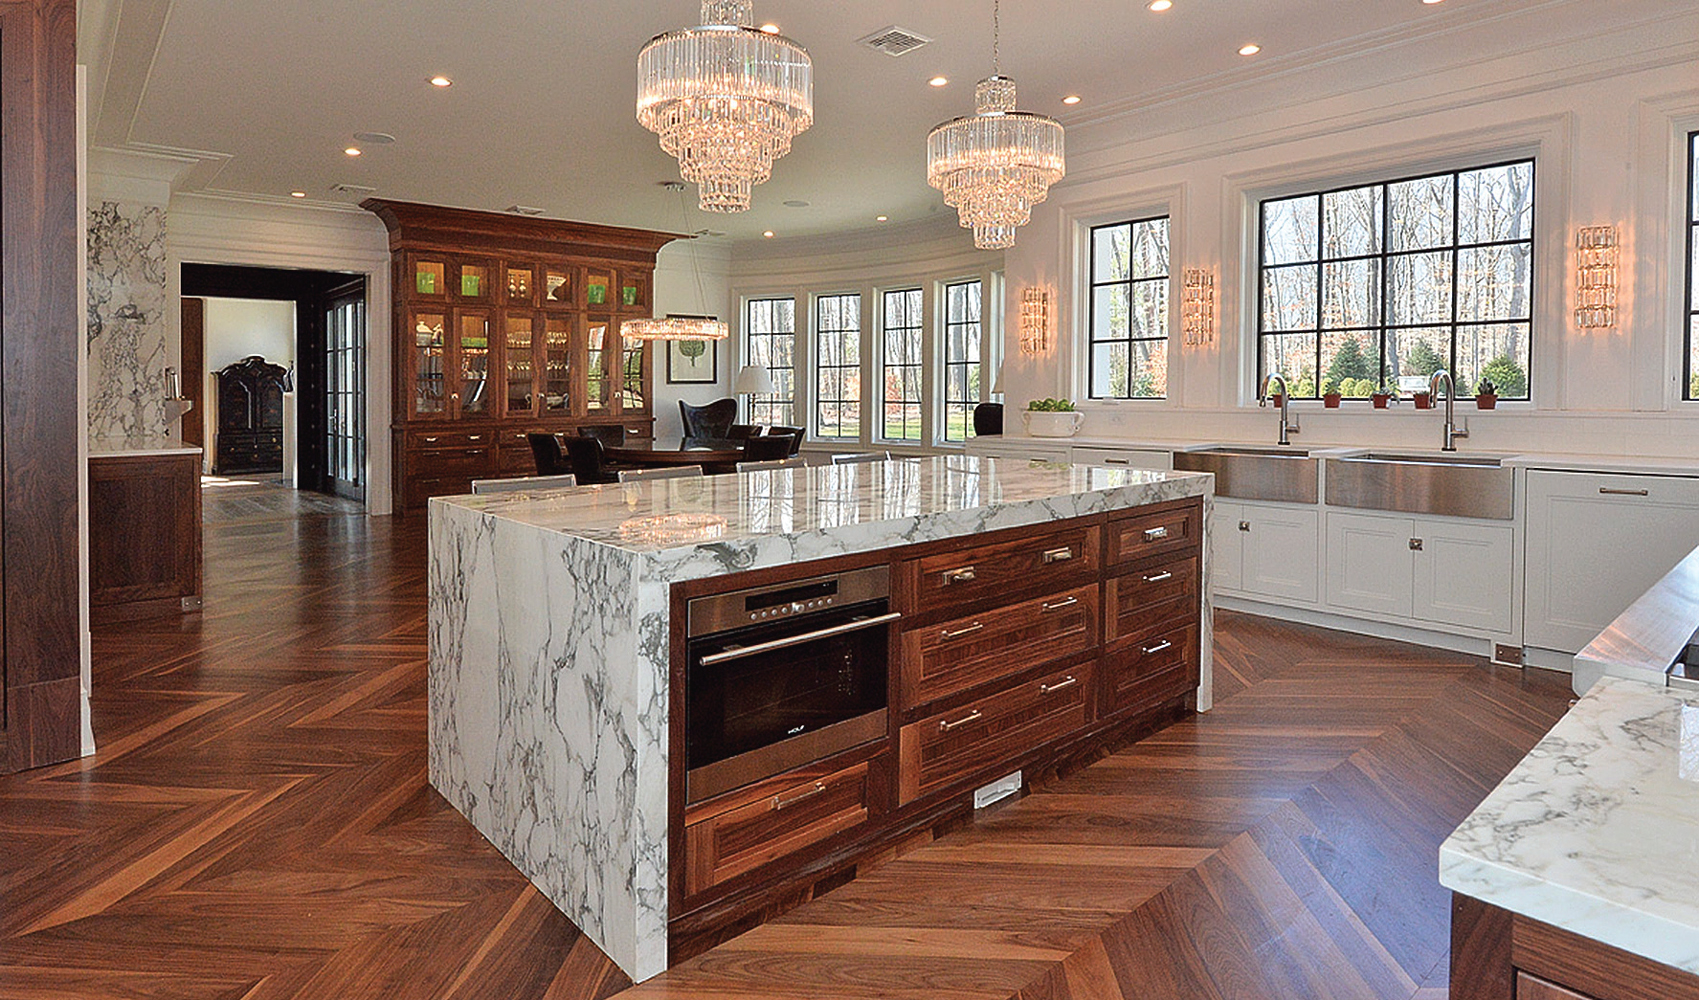 The Lure of Luxury Kitchens